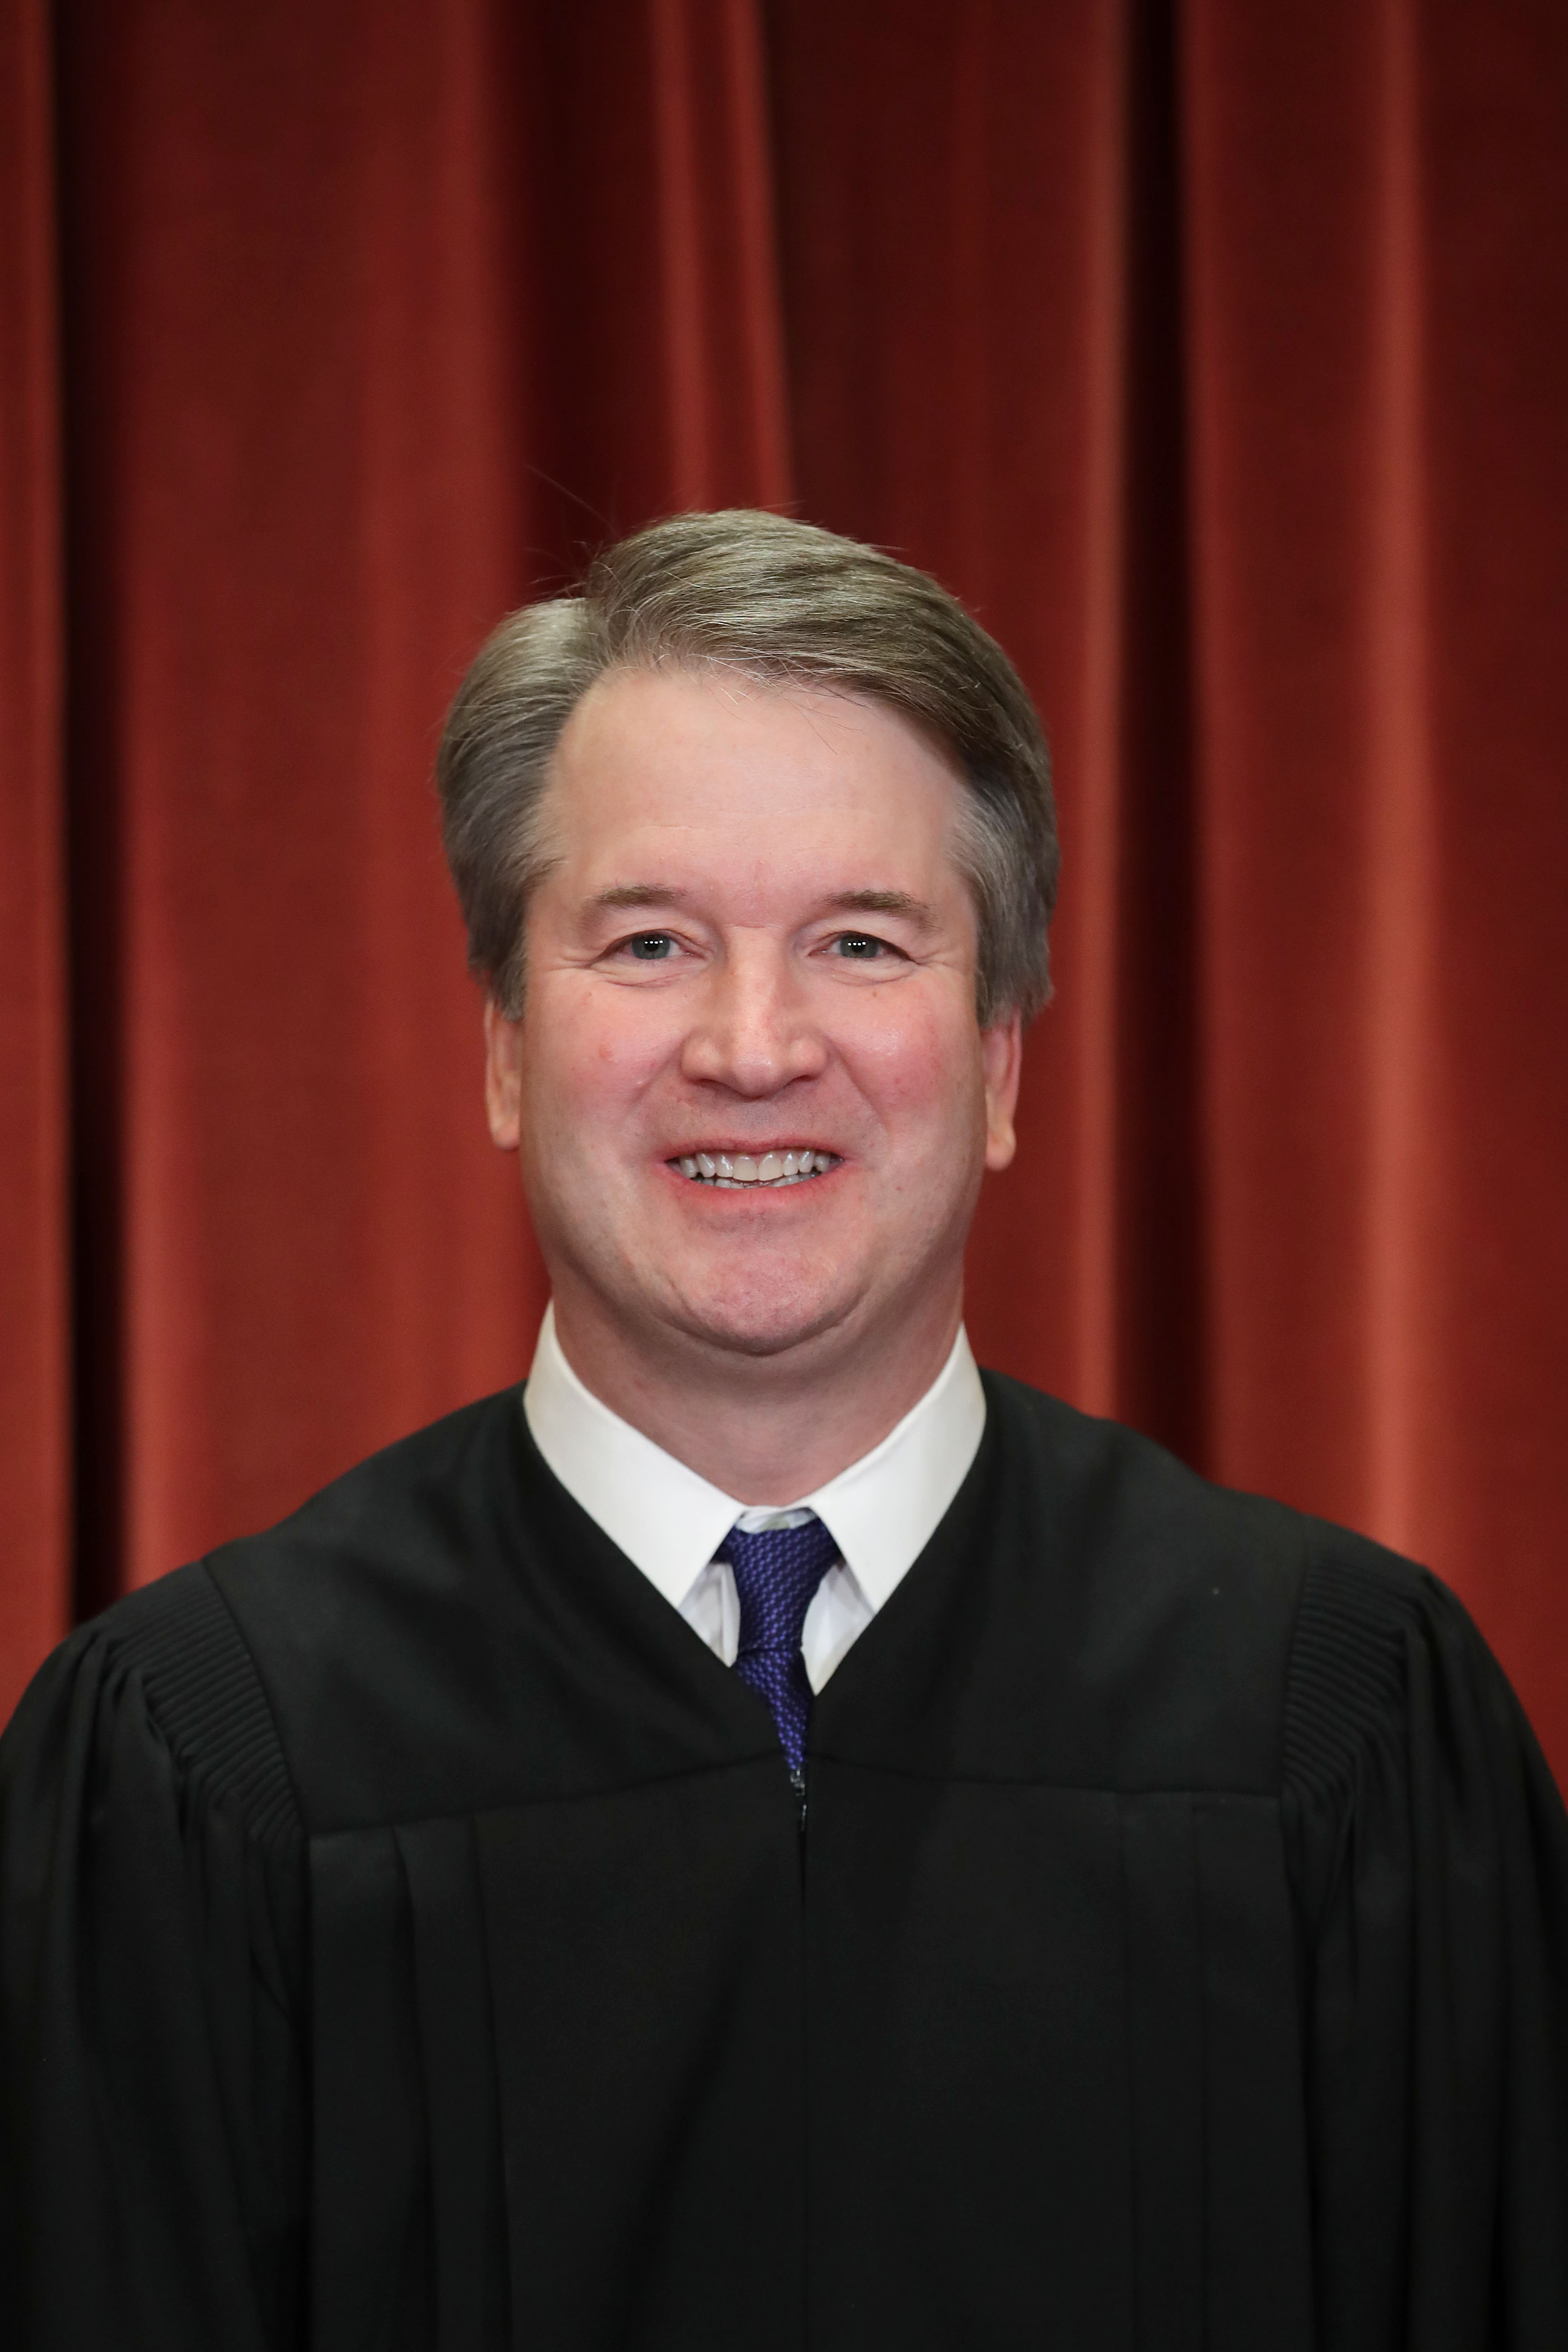 United States Supreme Court Associate Justice Brett Kavanaugh poses for the court's official portrait in the East Conference Room at the Supreme Court building November 30, 2018 in Washington, DC. (Chip Somodevilla/Getty Images)